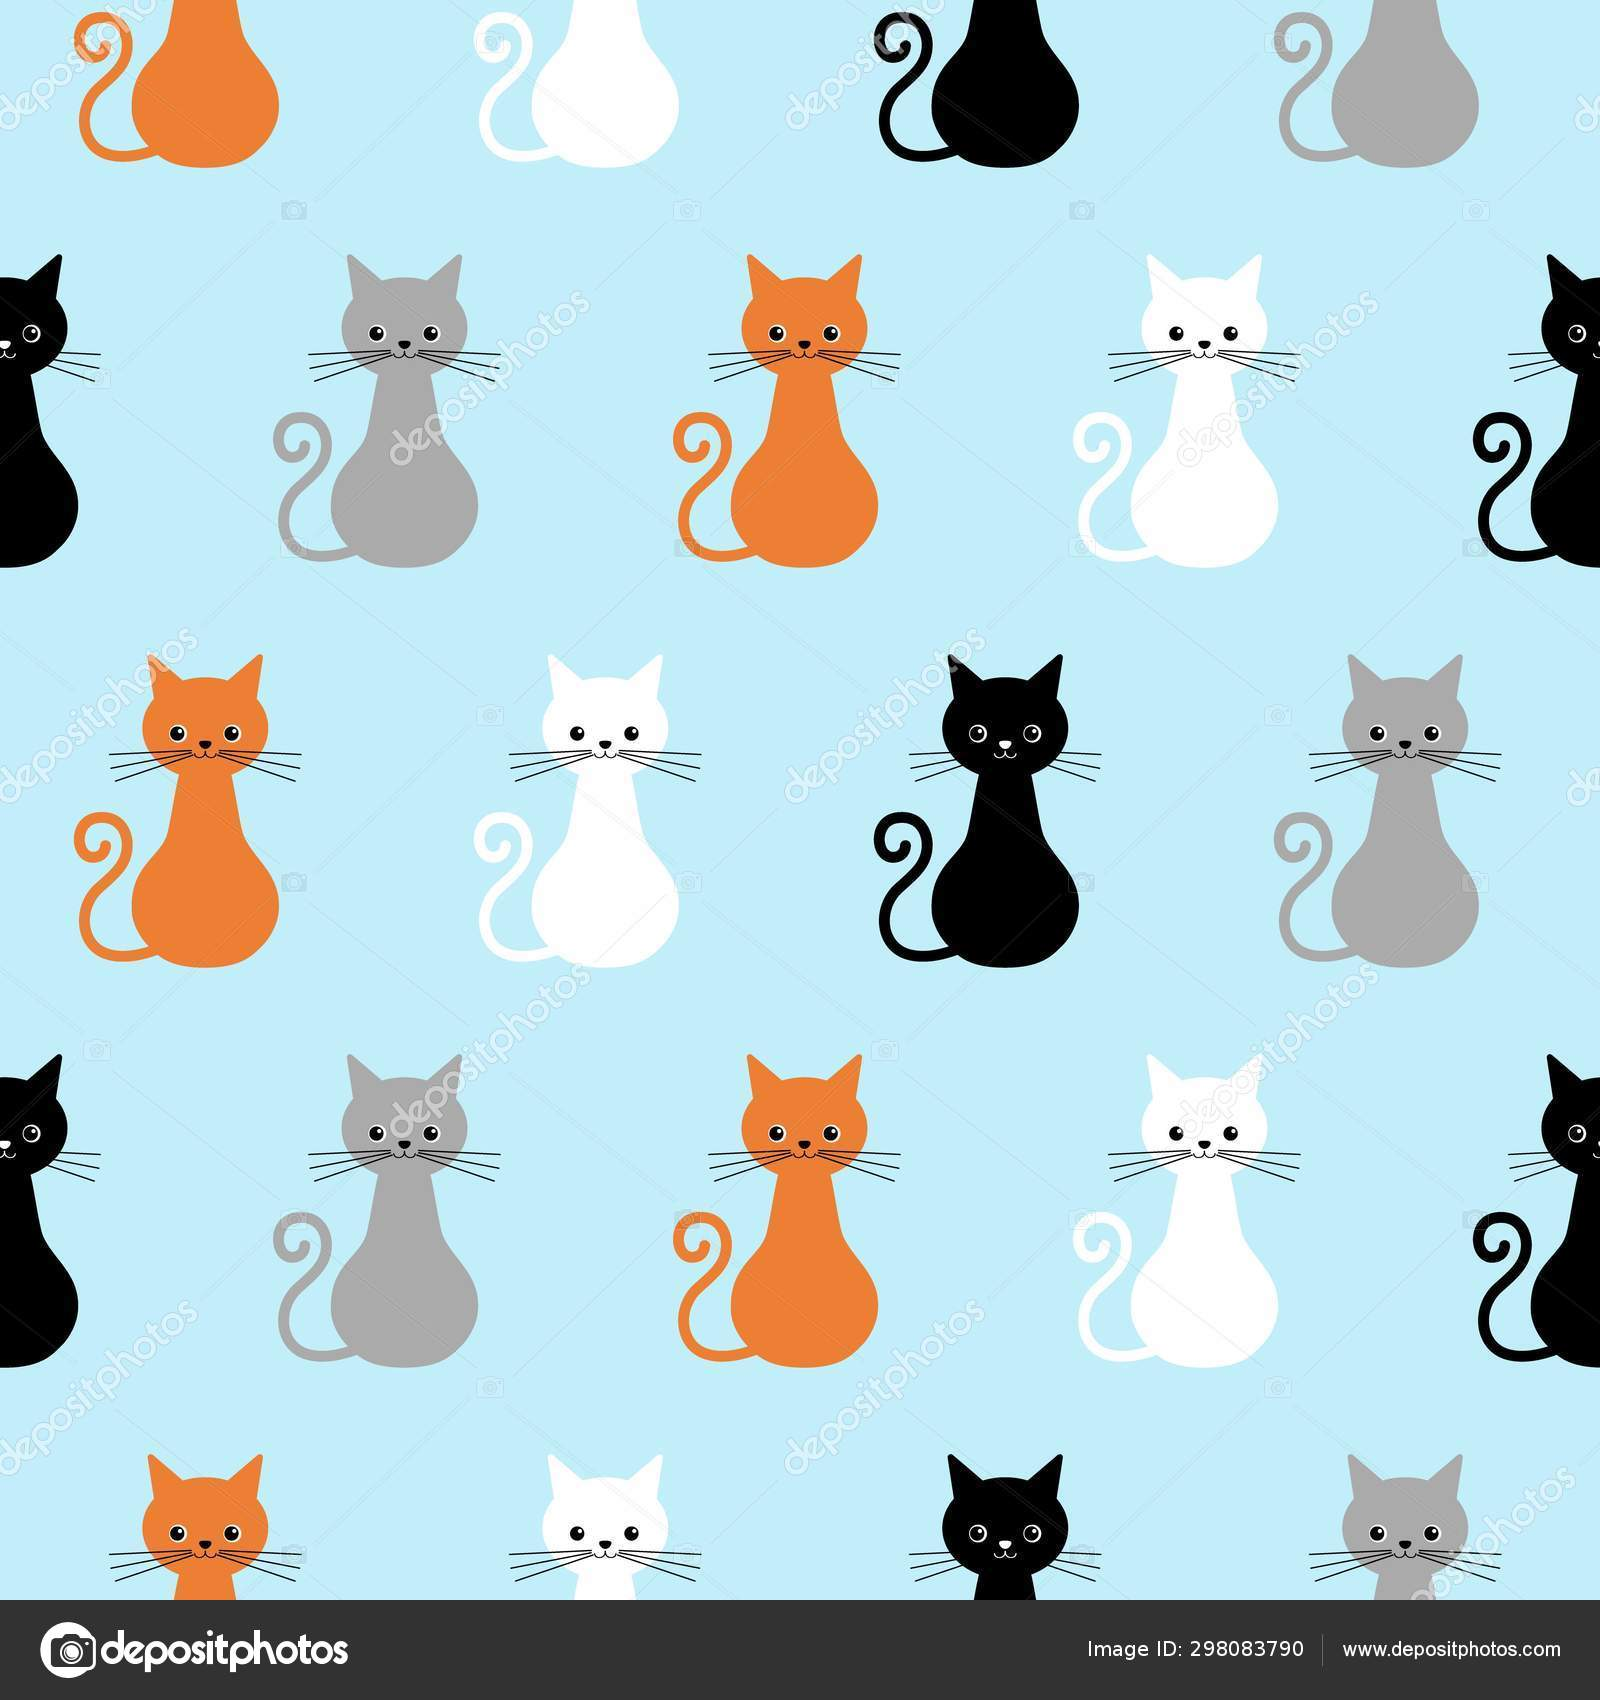 Seamless Pattern With Cute Cats Background With Gray White Black Ginger Kittens Stock Vector C Yuliar 298083790